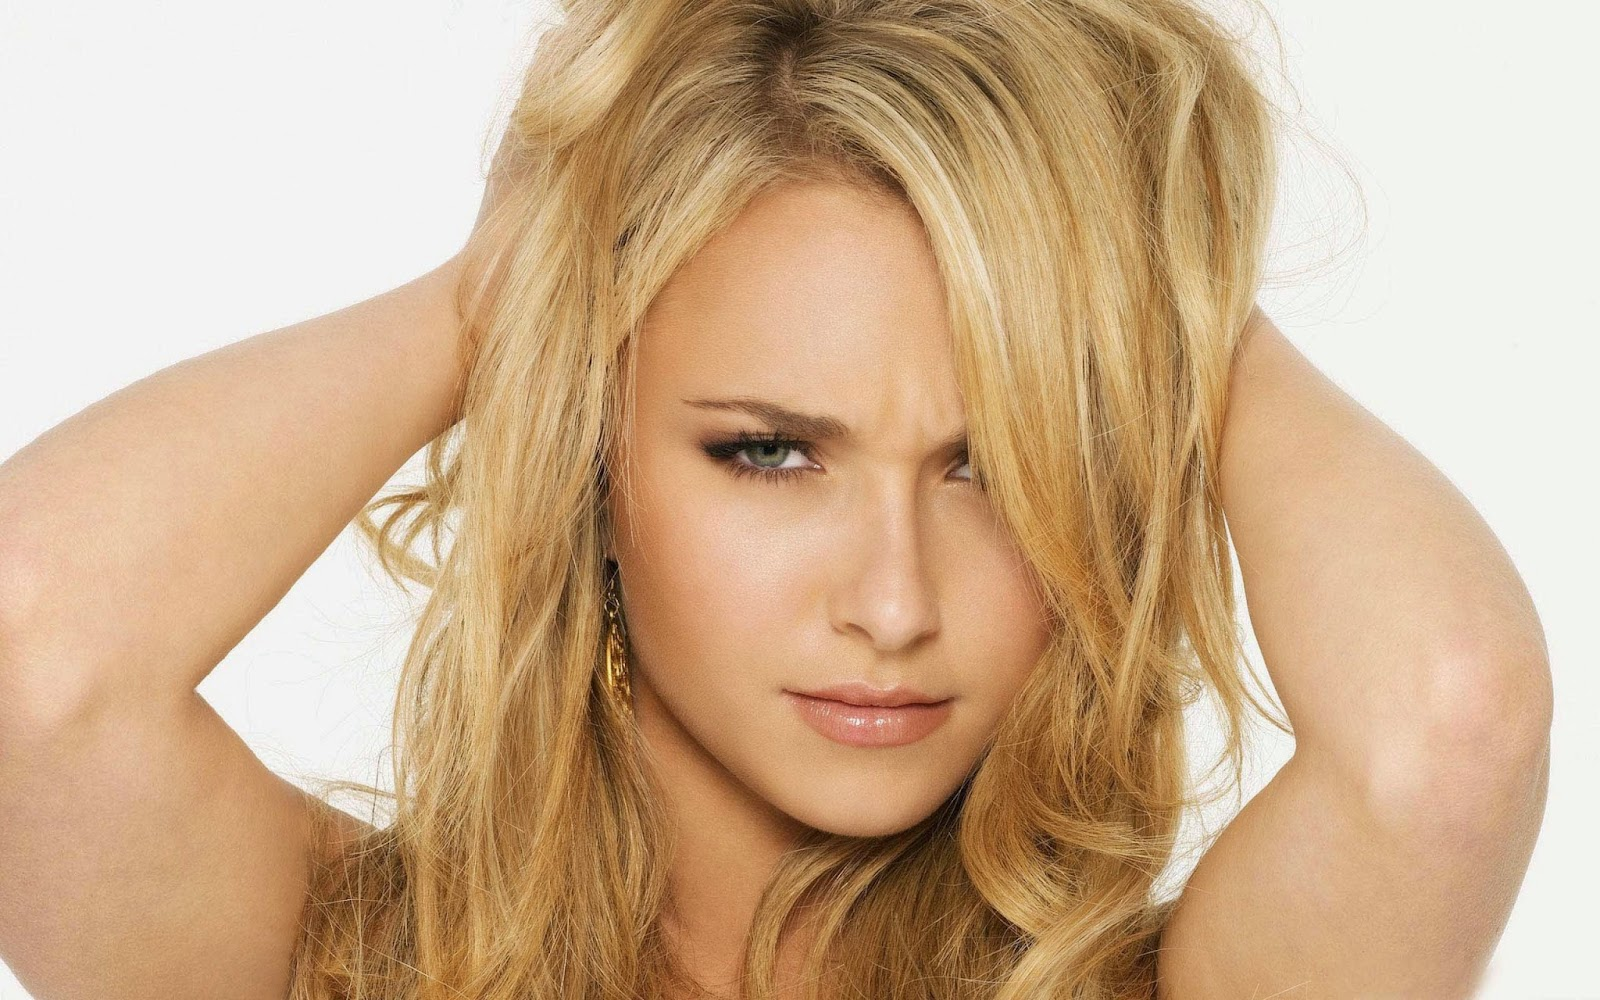 Hayden panettiere new hair style wallpapers